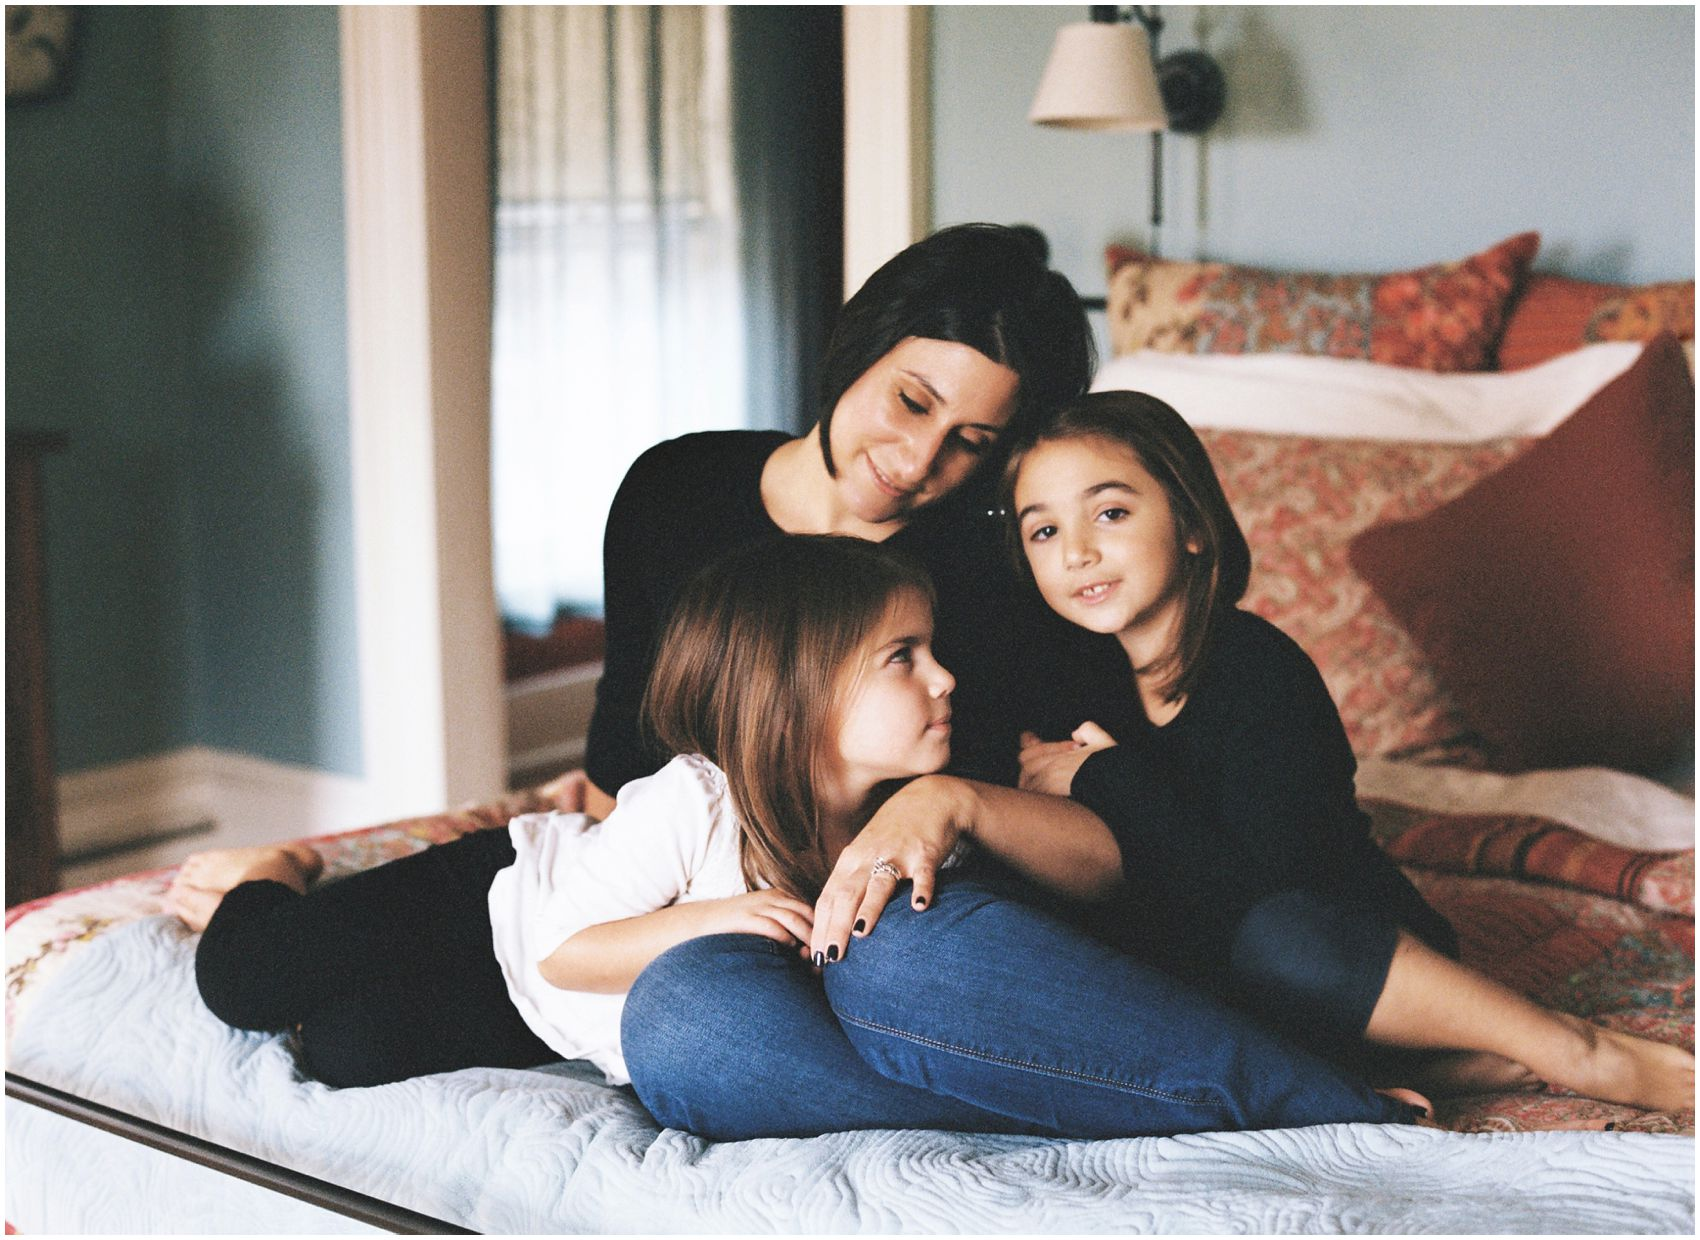 Mother and daughters snuggle together on their bed for a motherhood and family photography portrait in Tenafly, NJ